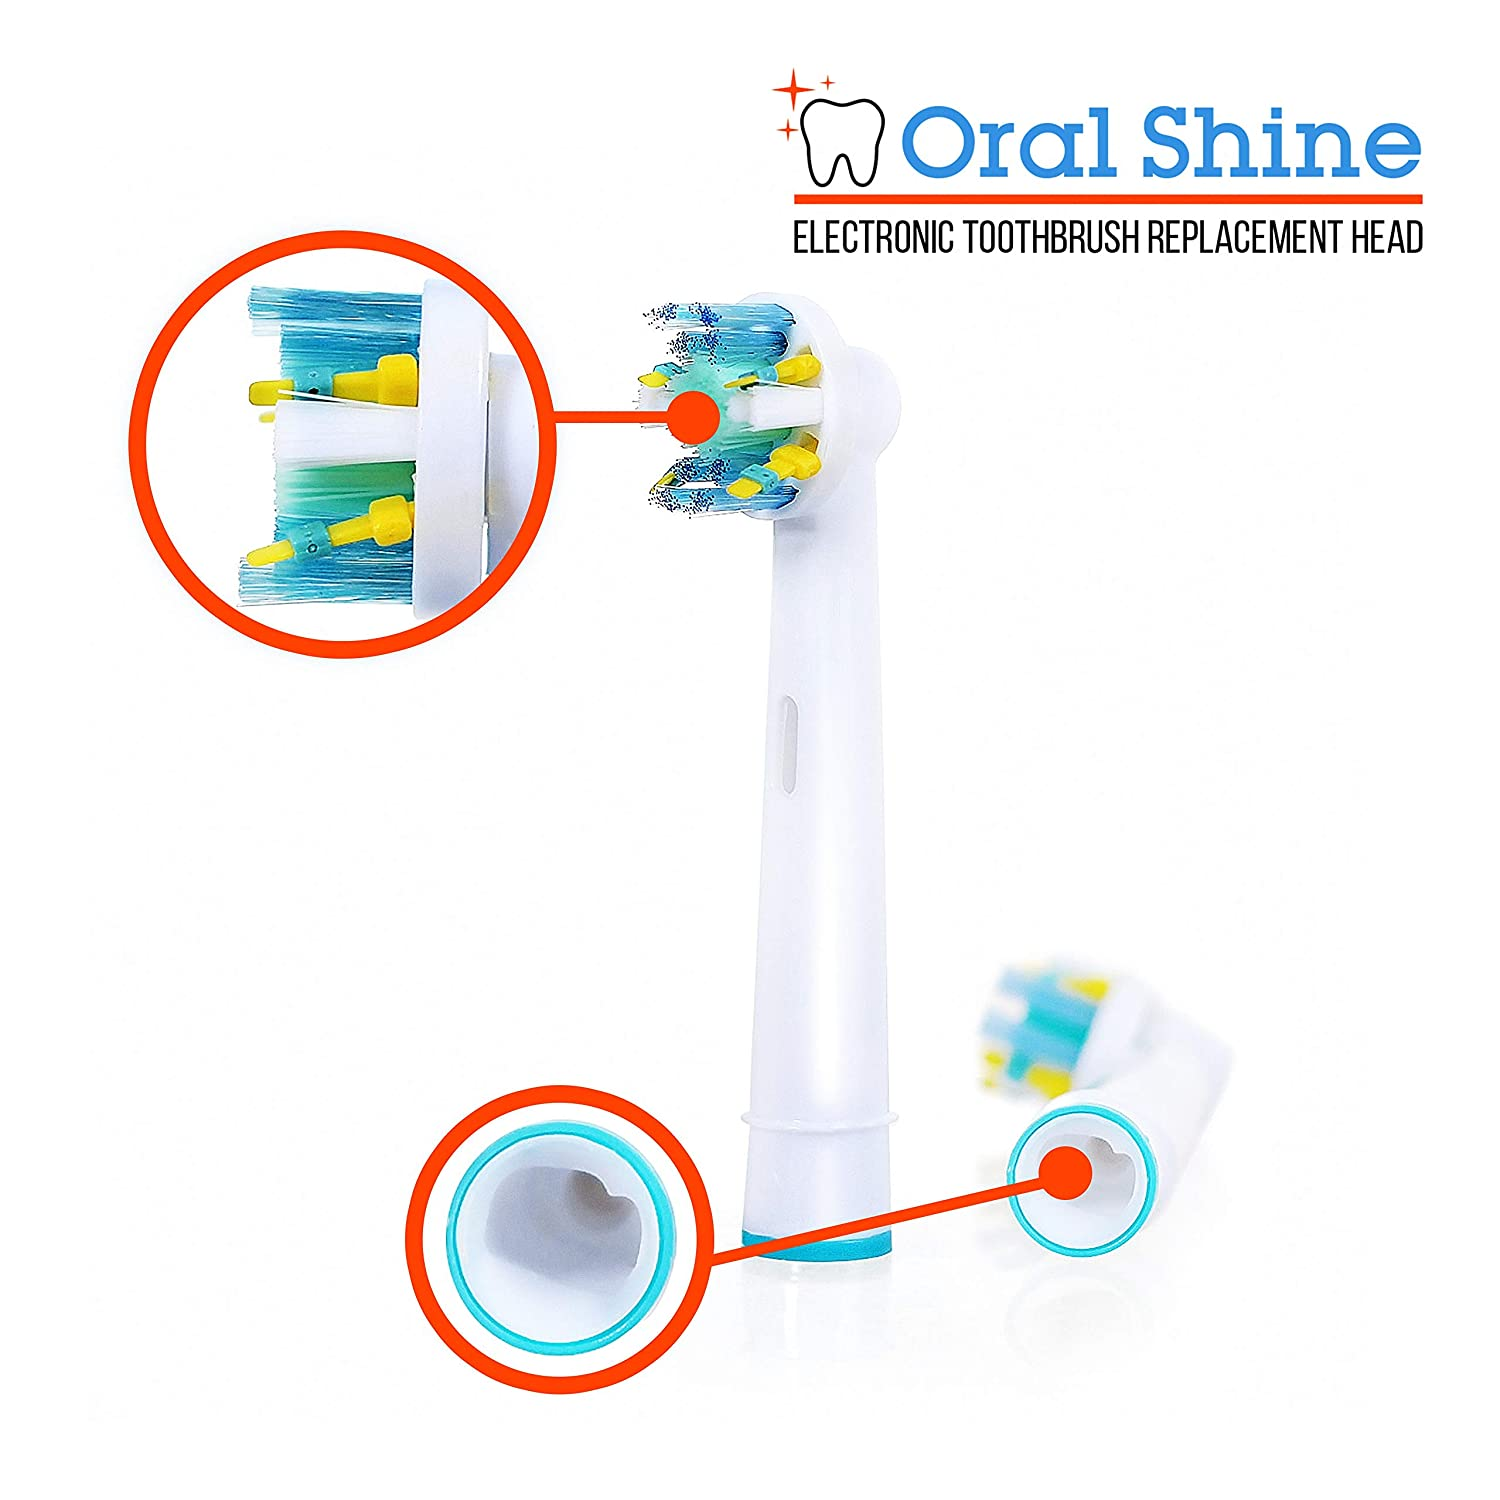 Oral Shine Electric Toothbrush Replacement Heads Compatible with OralB Electric Toothbrushes  4